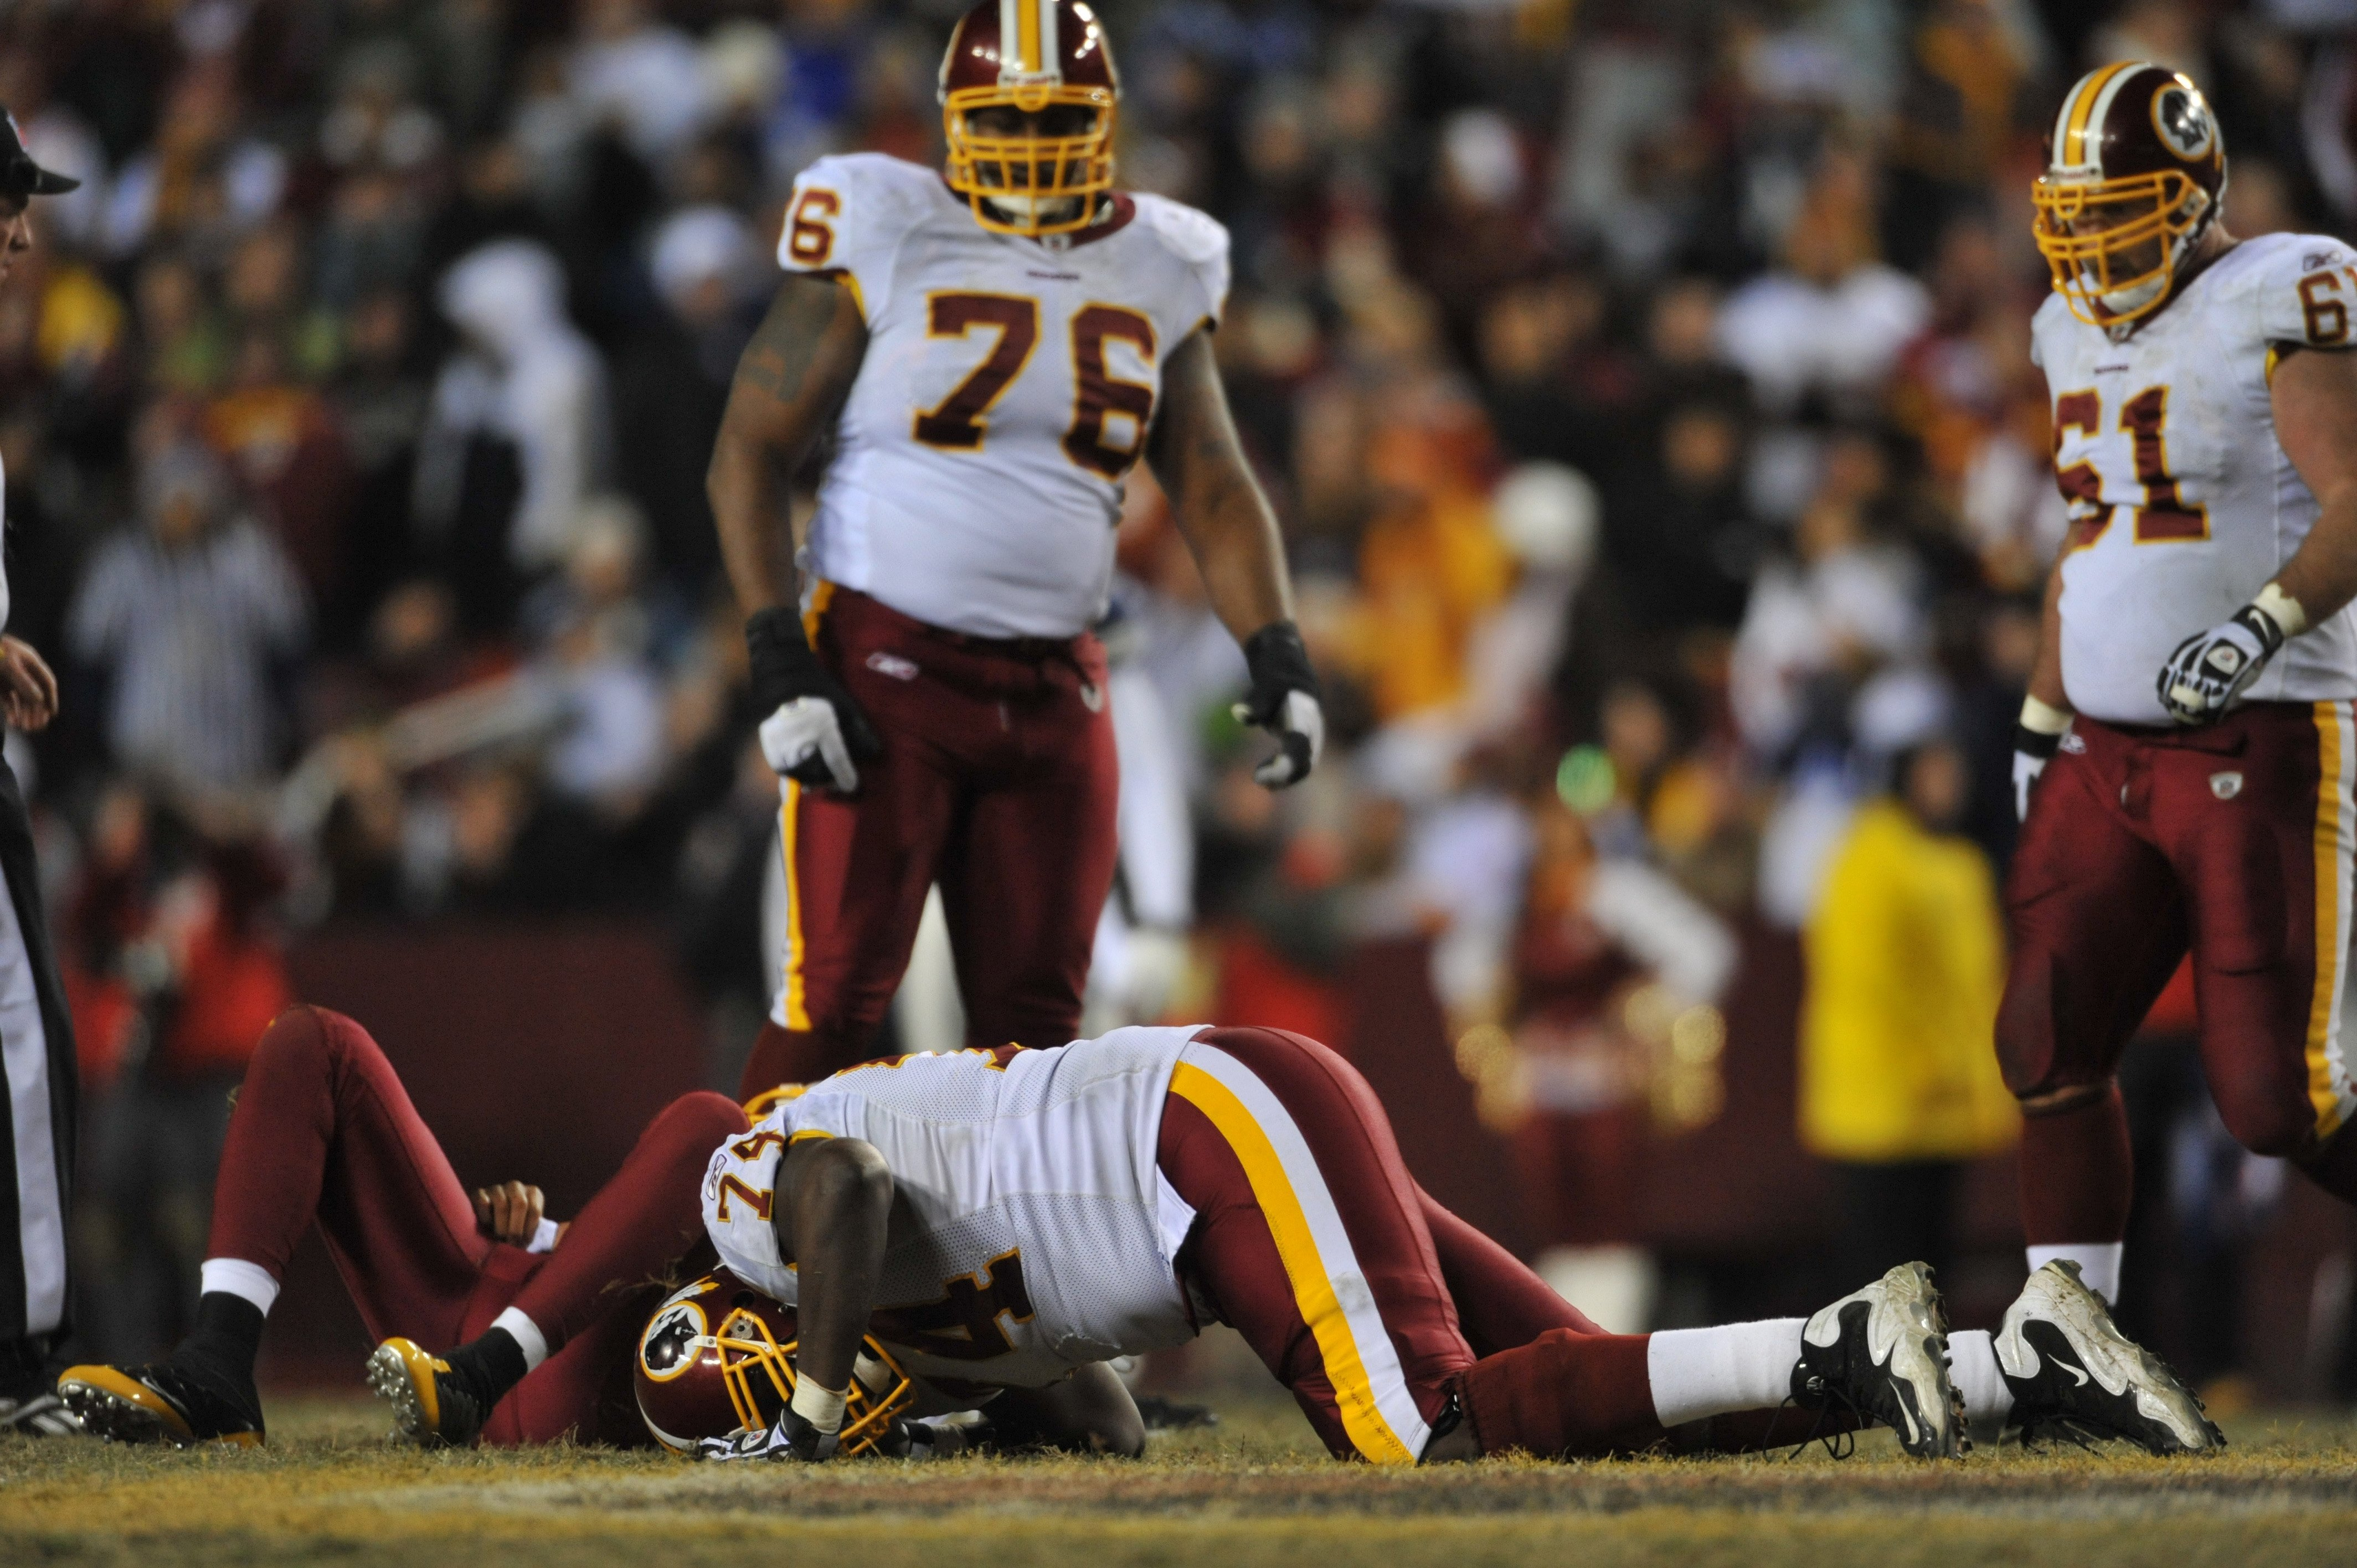 LANDOVER, MD - DECEMBER 27:  Stephon Heyer #74 of the Washington Redskins lies injured during the game against the Dallas Cowboys at FedExField on December 27, 2009 in Landover, Maryland. The Cowboys defeated the Redskins 17-0. (Photo by Larry French/Gett